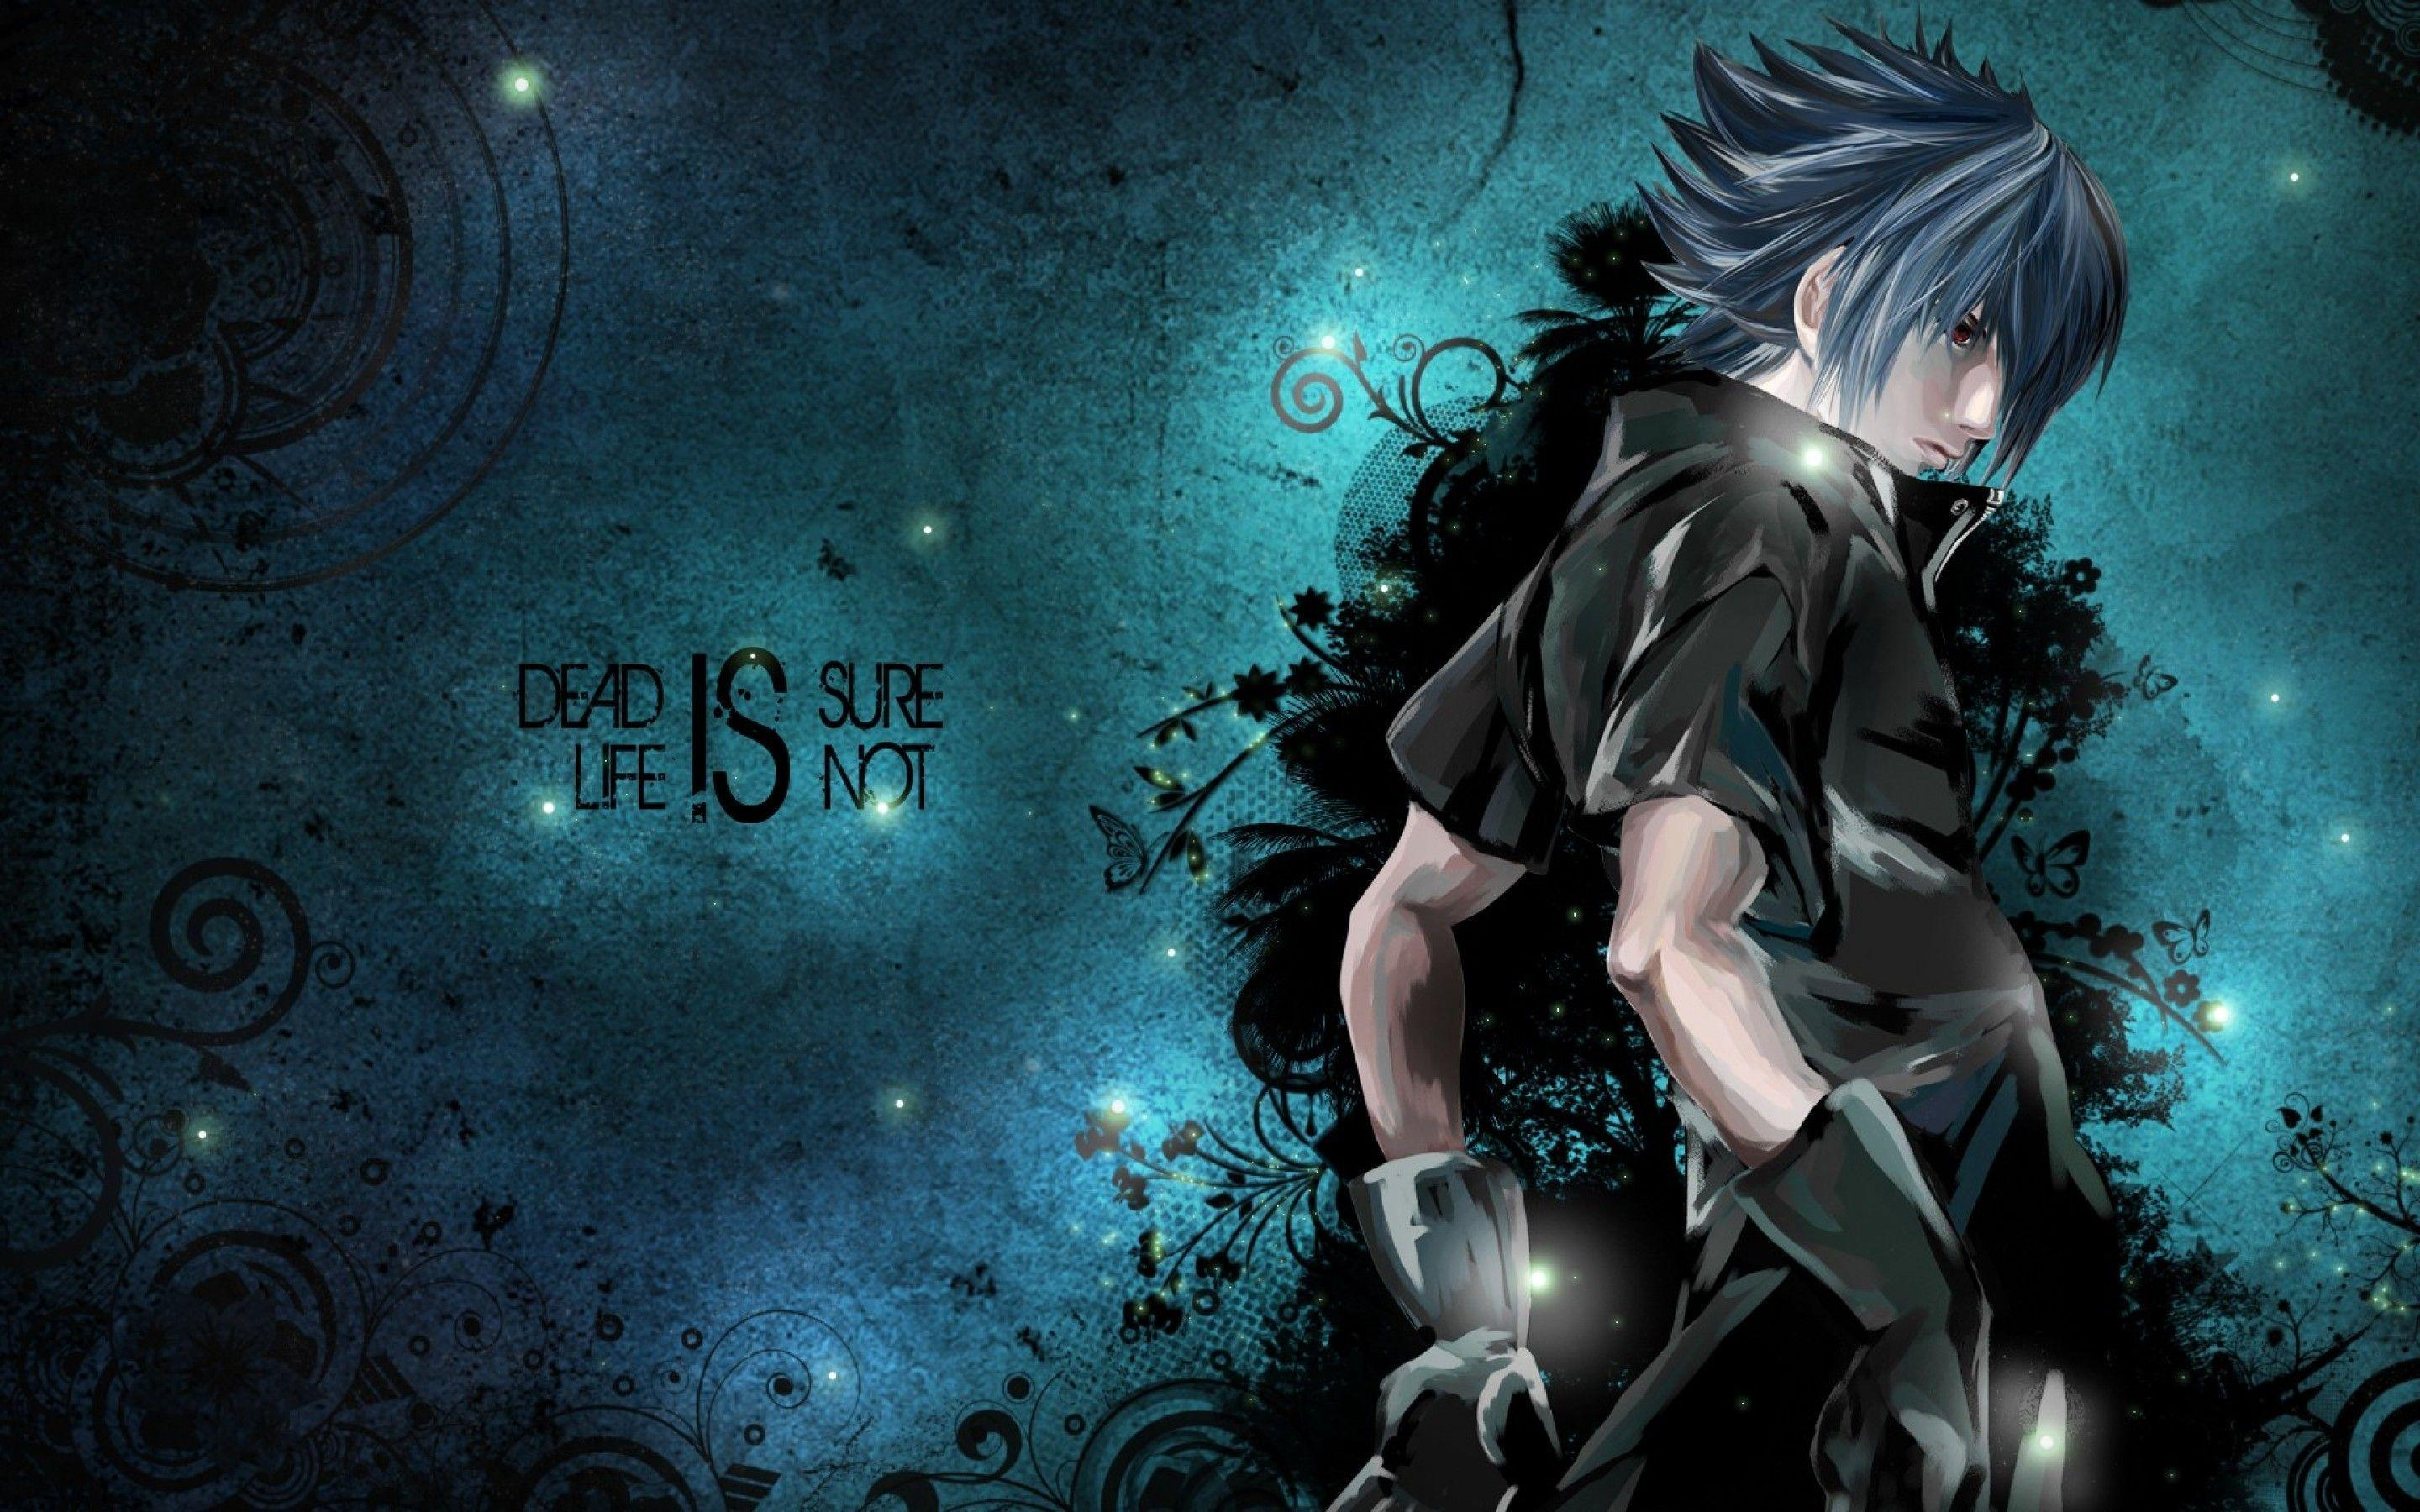 Widescreen awesome anime cave on wallpaper high quality for mobile